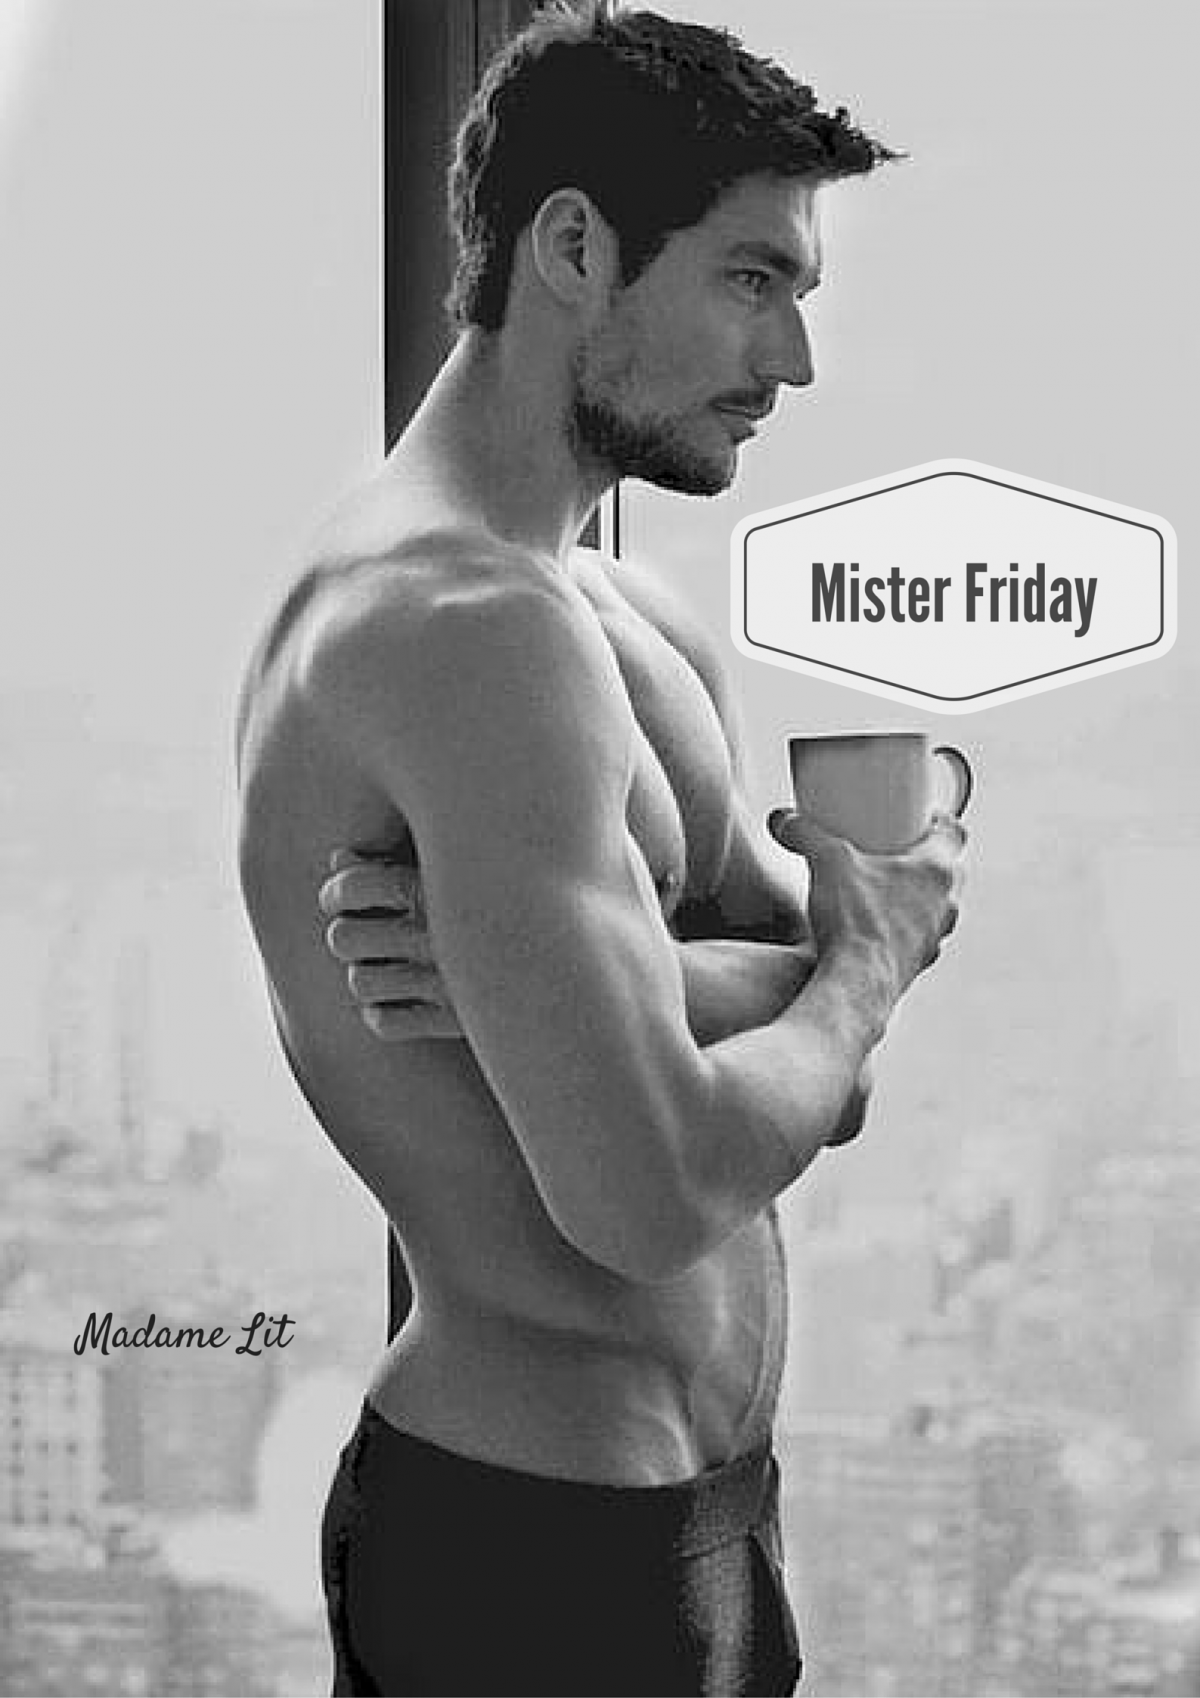 Mister-Friday-1200x1698.png